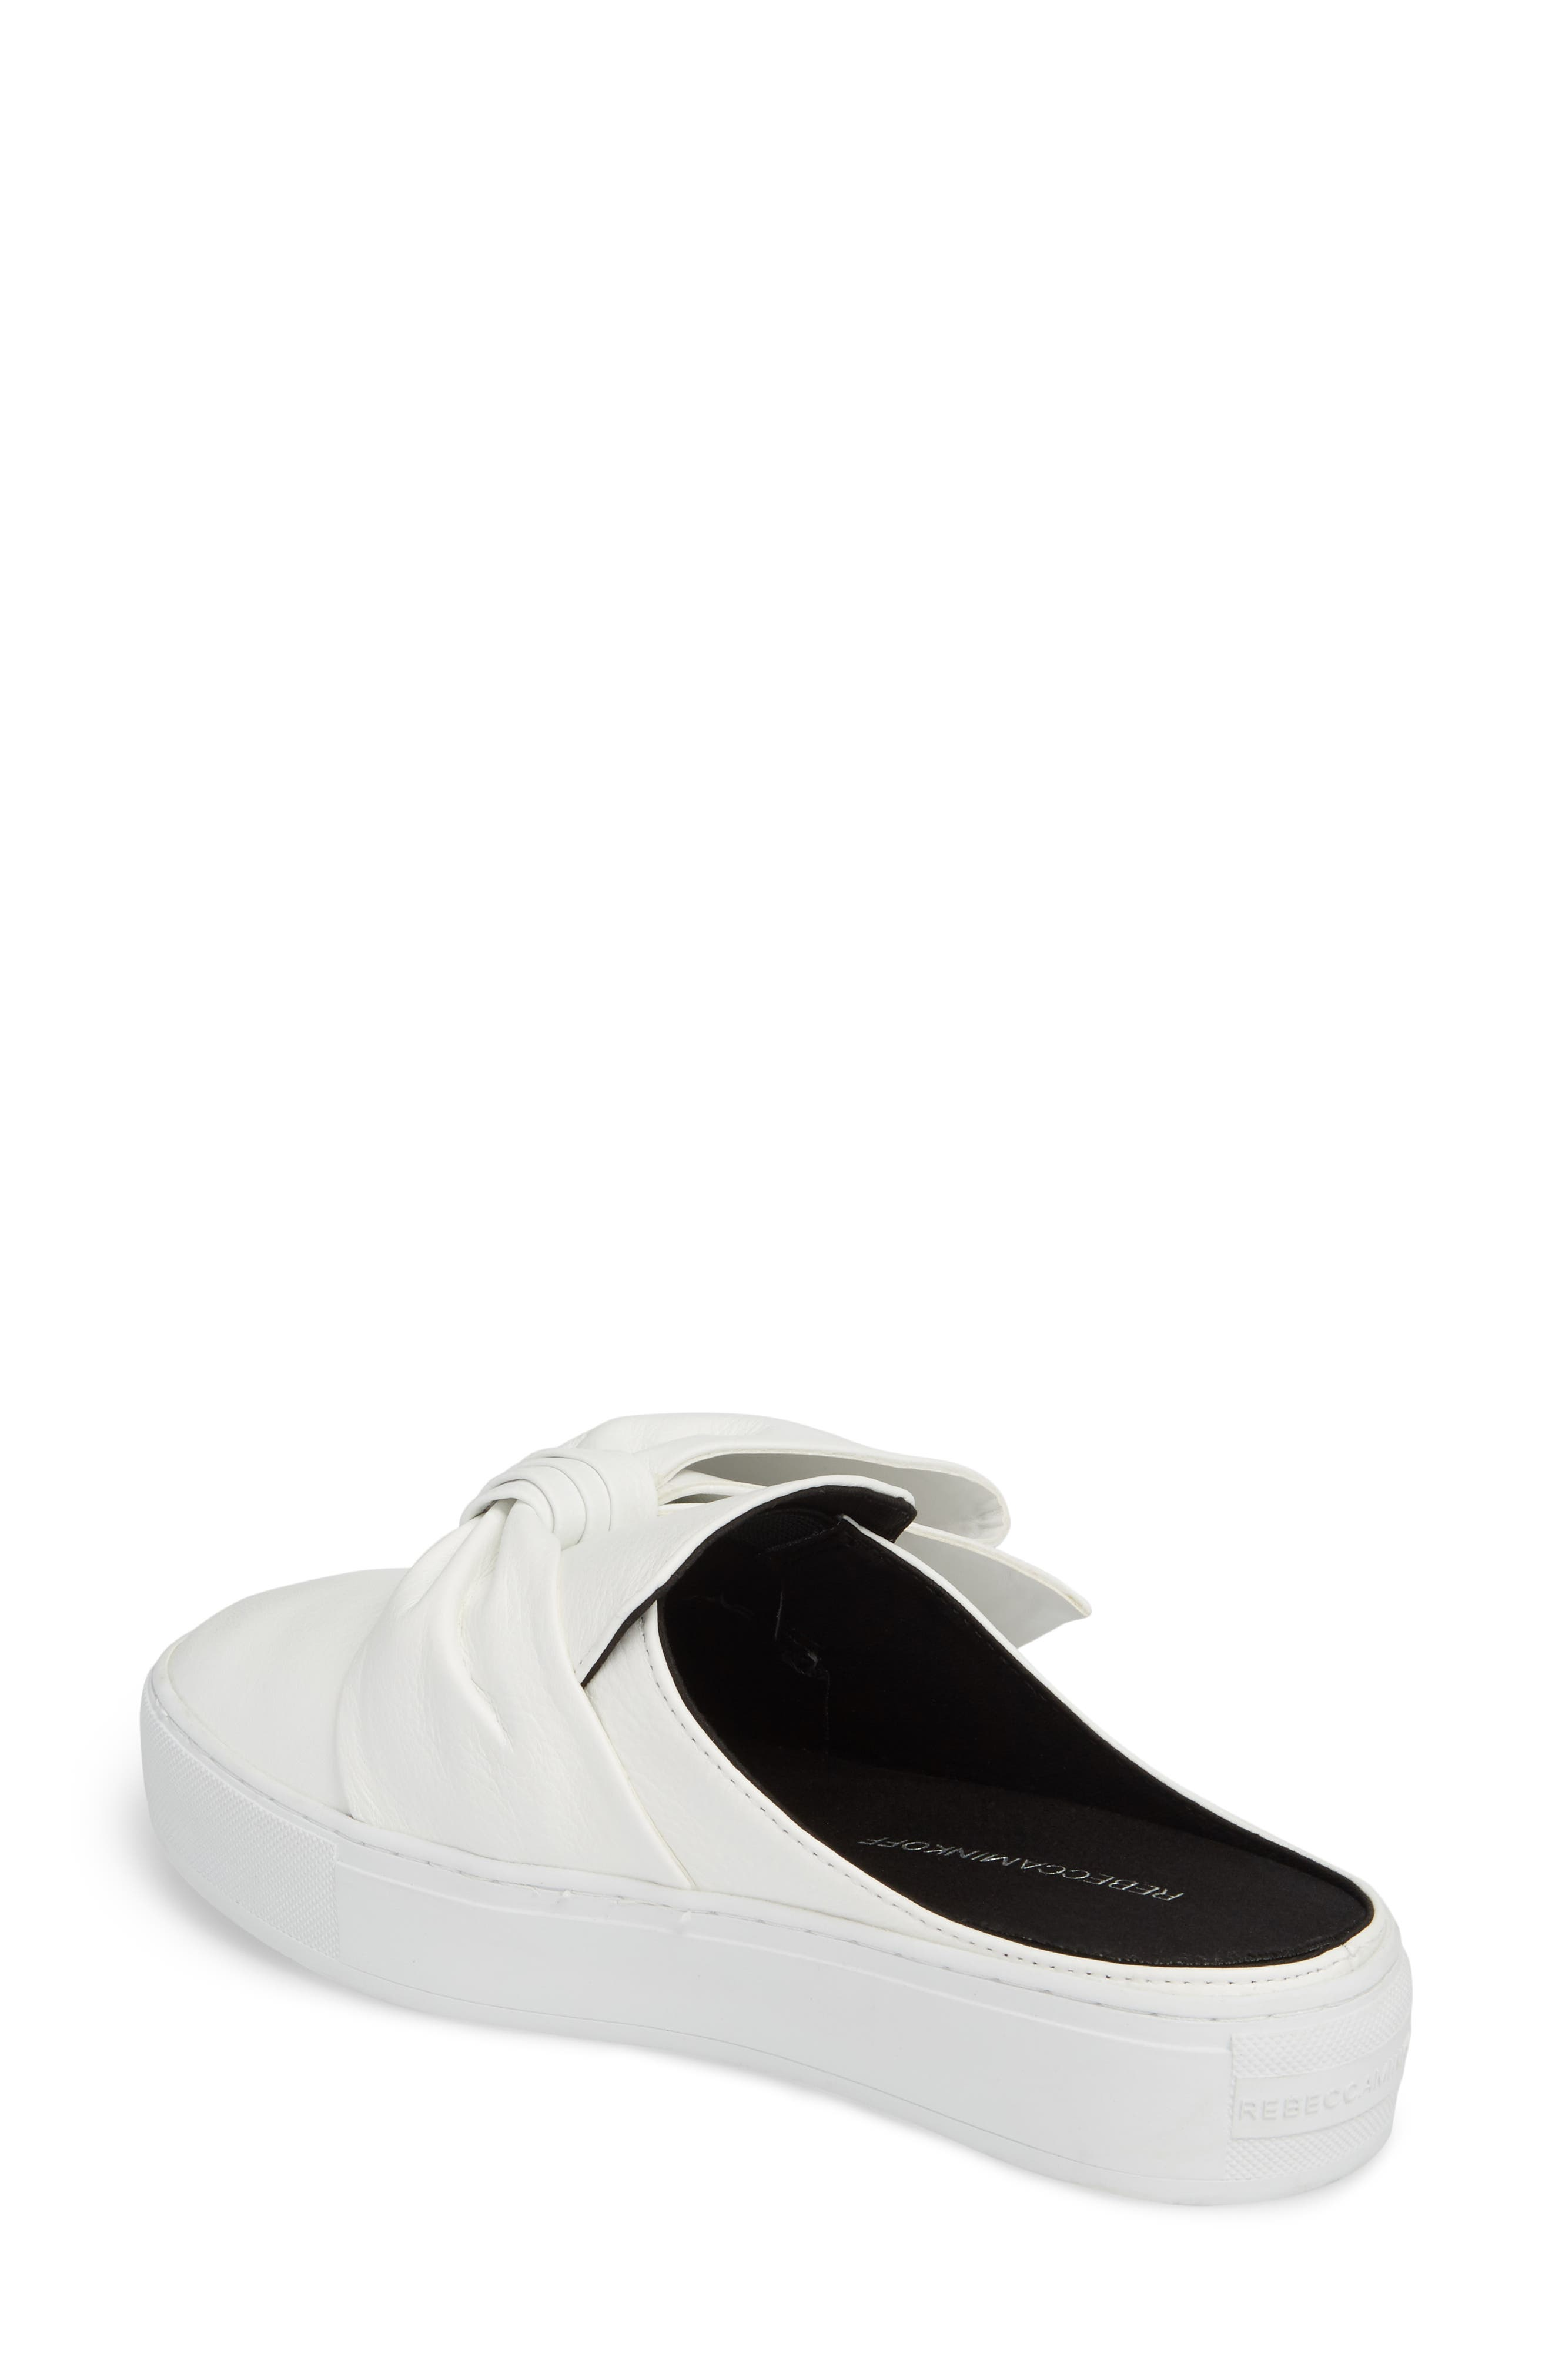 Alternate Image 2  - Rebecca Minkoff Neva Sneaker Mule (Women)